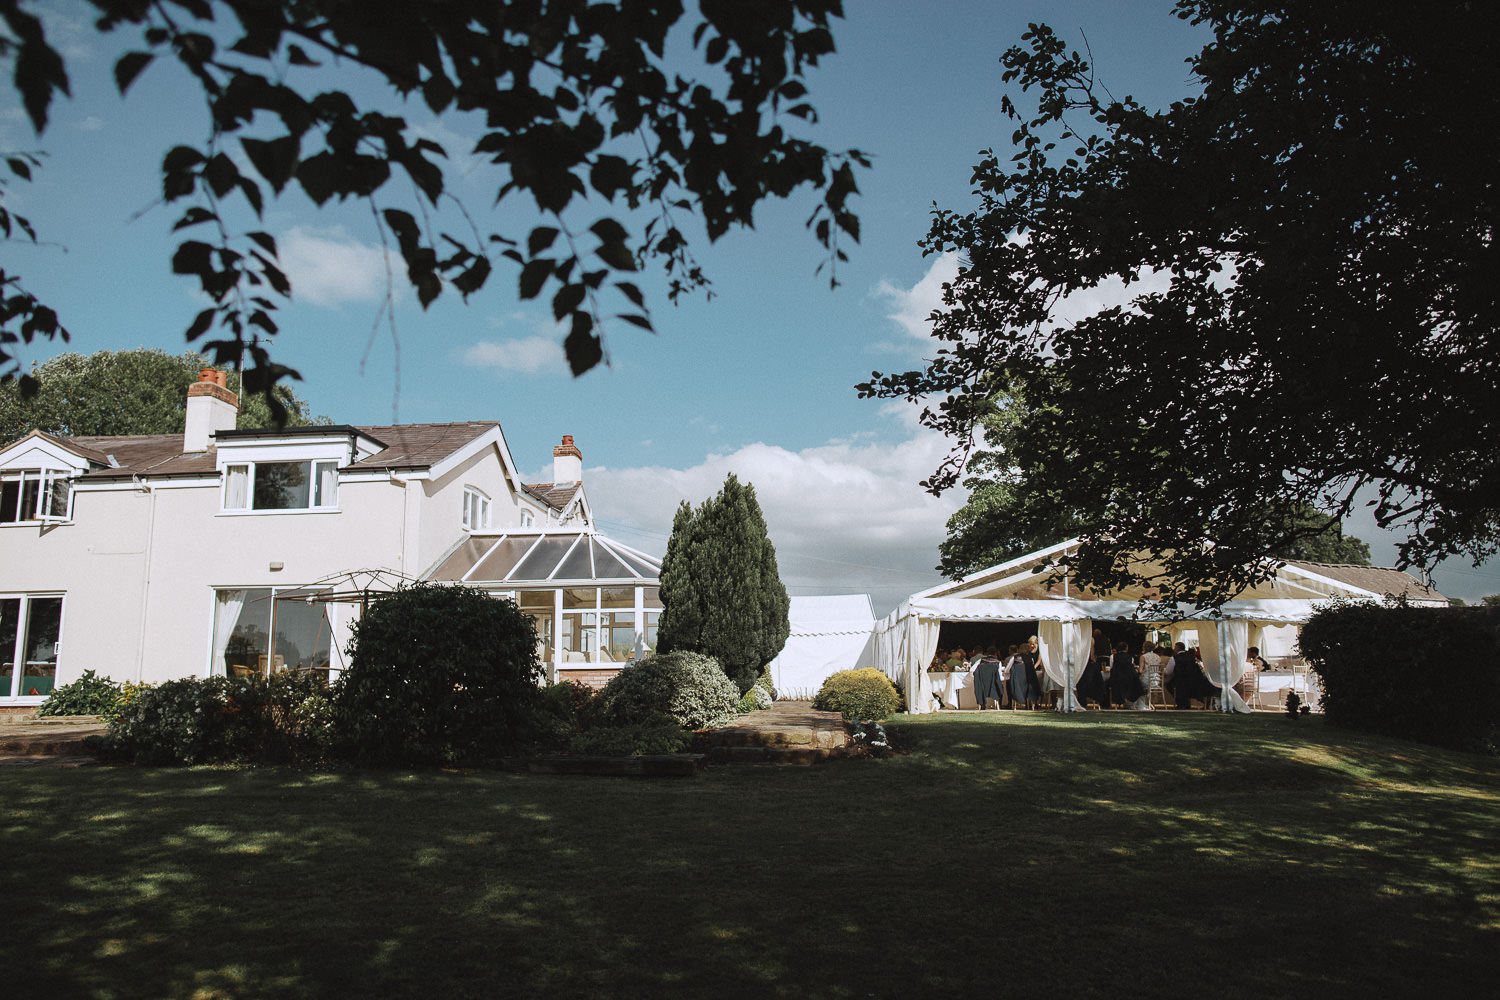 a house and a marquee next to it